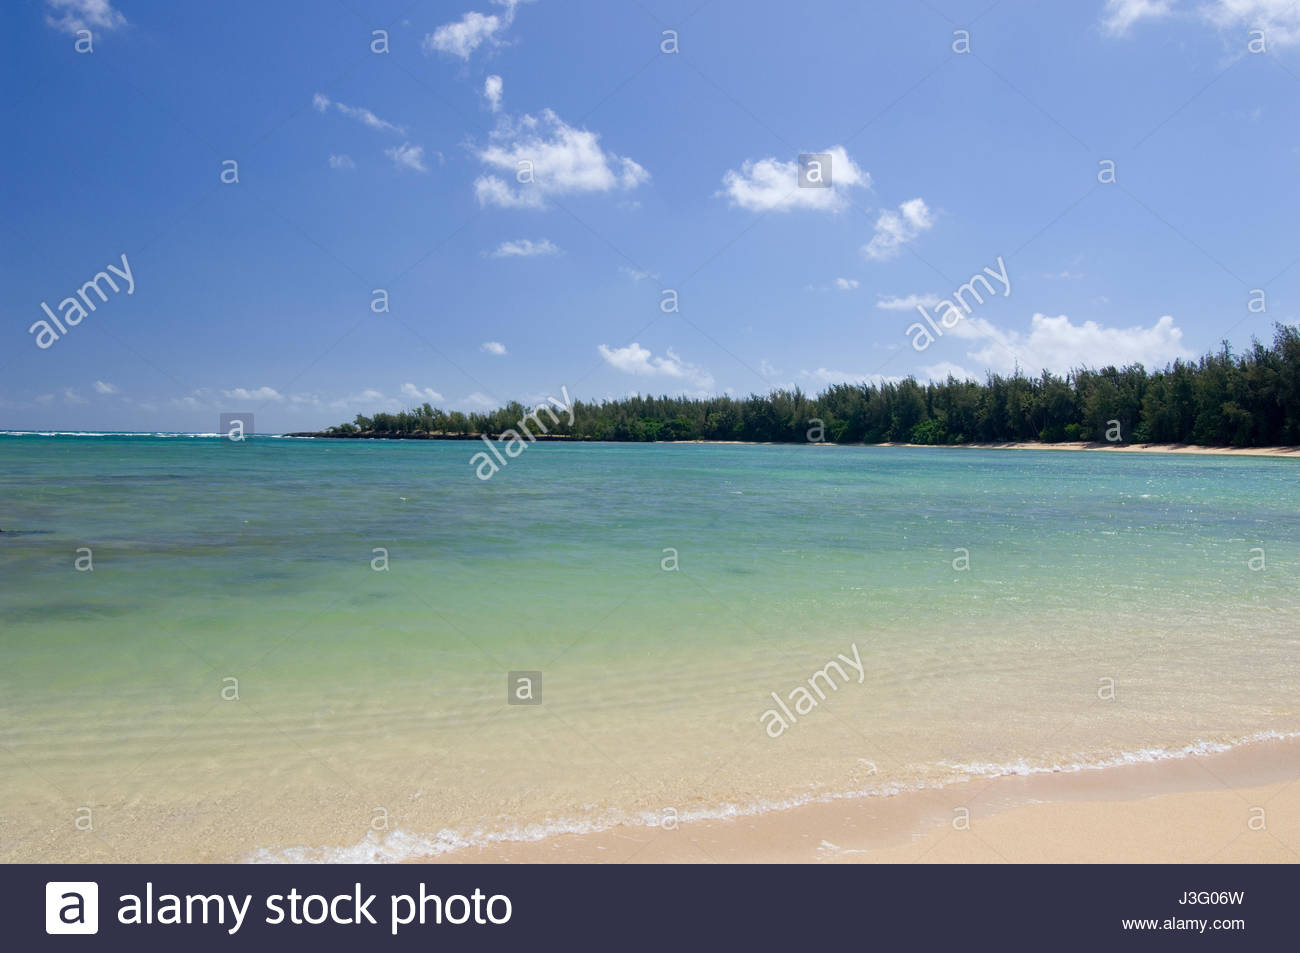 Clear blue-green of Kawela Bay, Kahuku, Oahu, Hawaii, USA - Stock Image